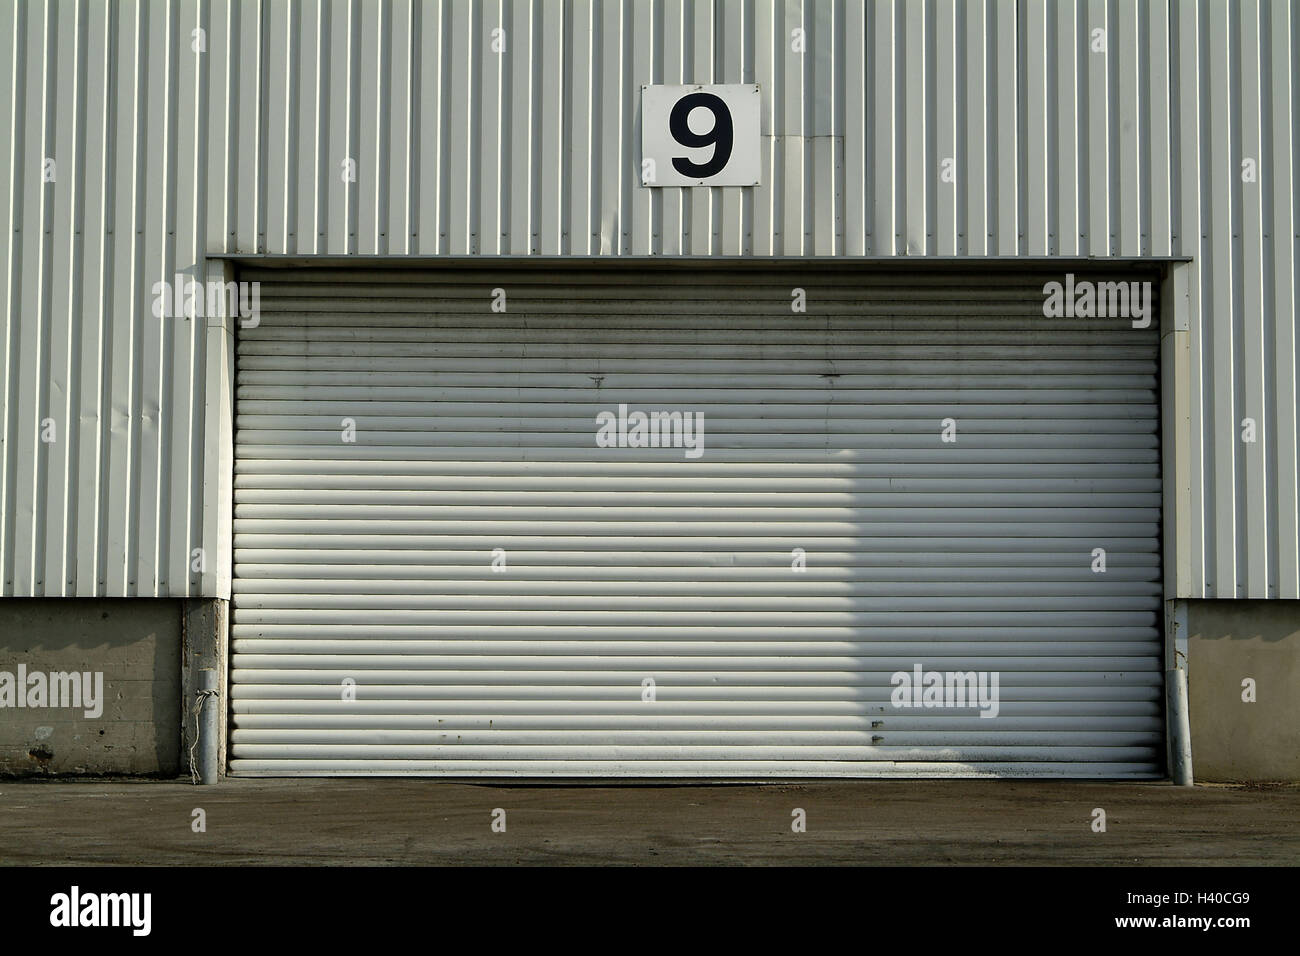 Charmant Warehouse, Detail, Garage Door, Support, Hall, Corrugated Iron, Corrugated  Iron